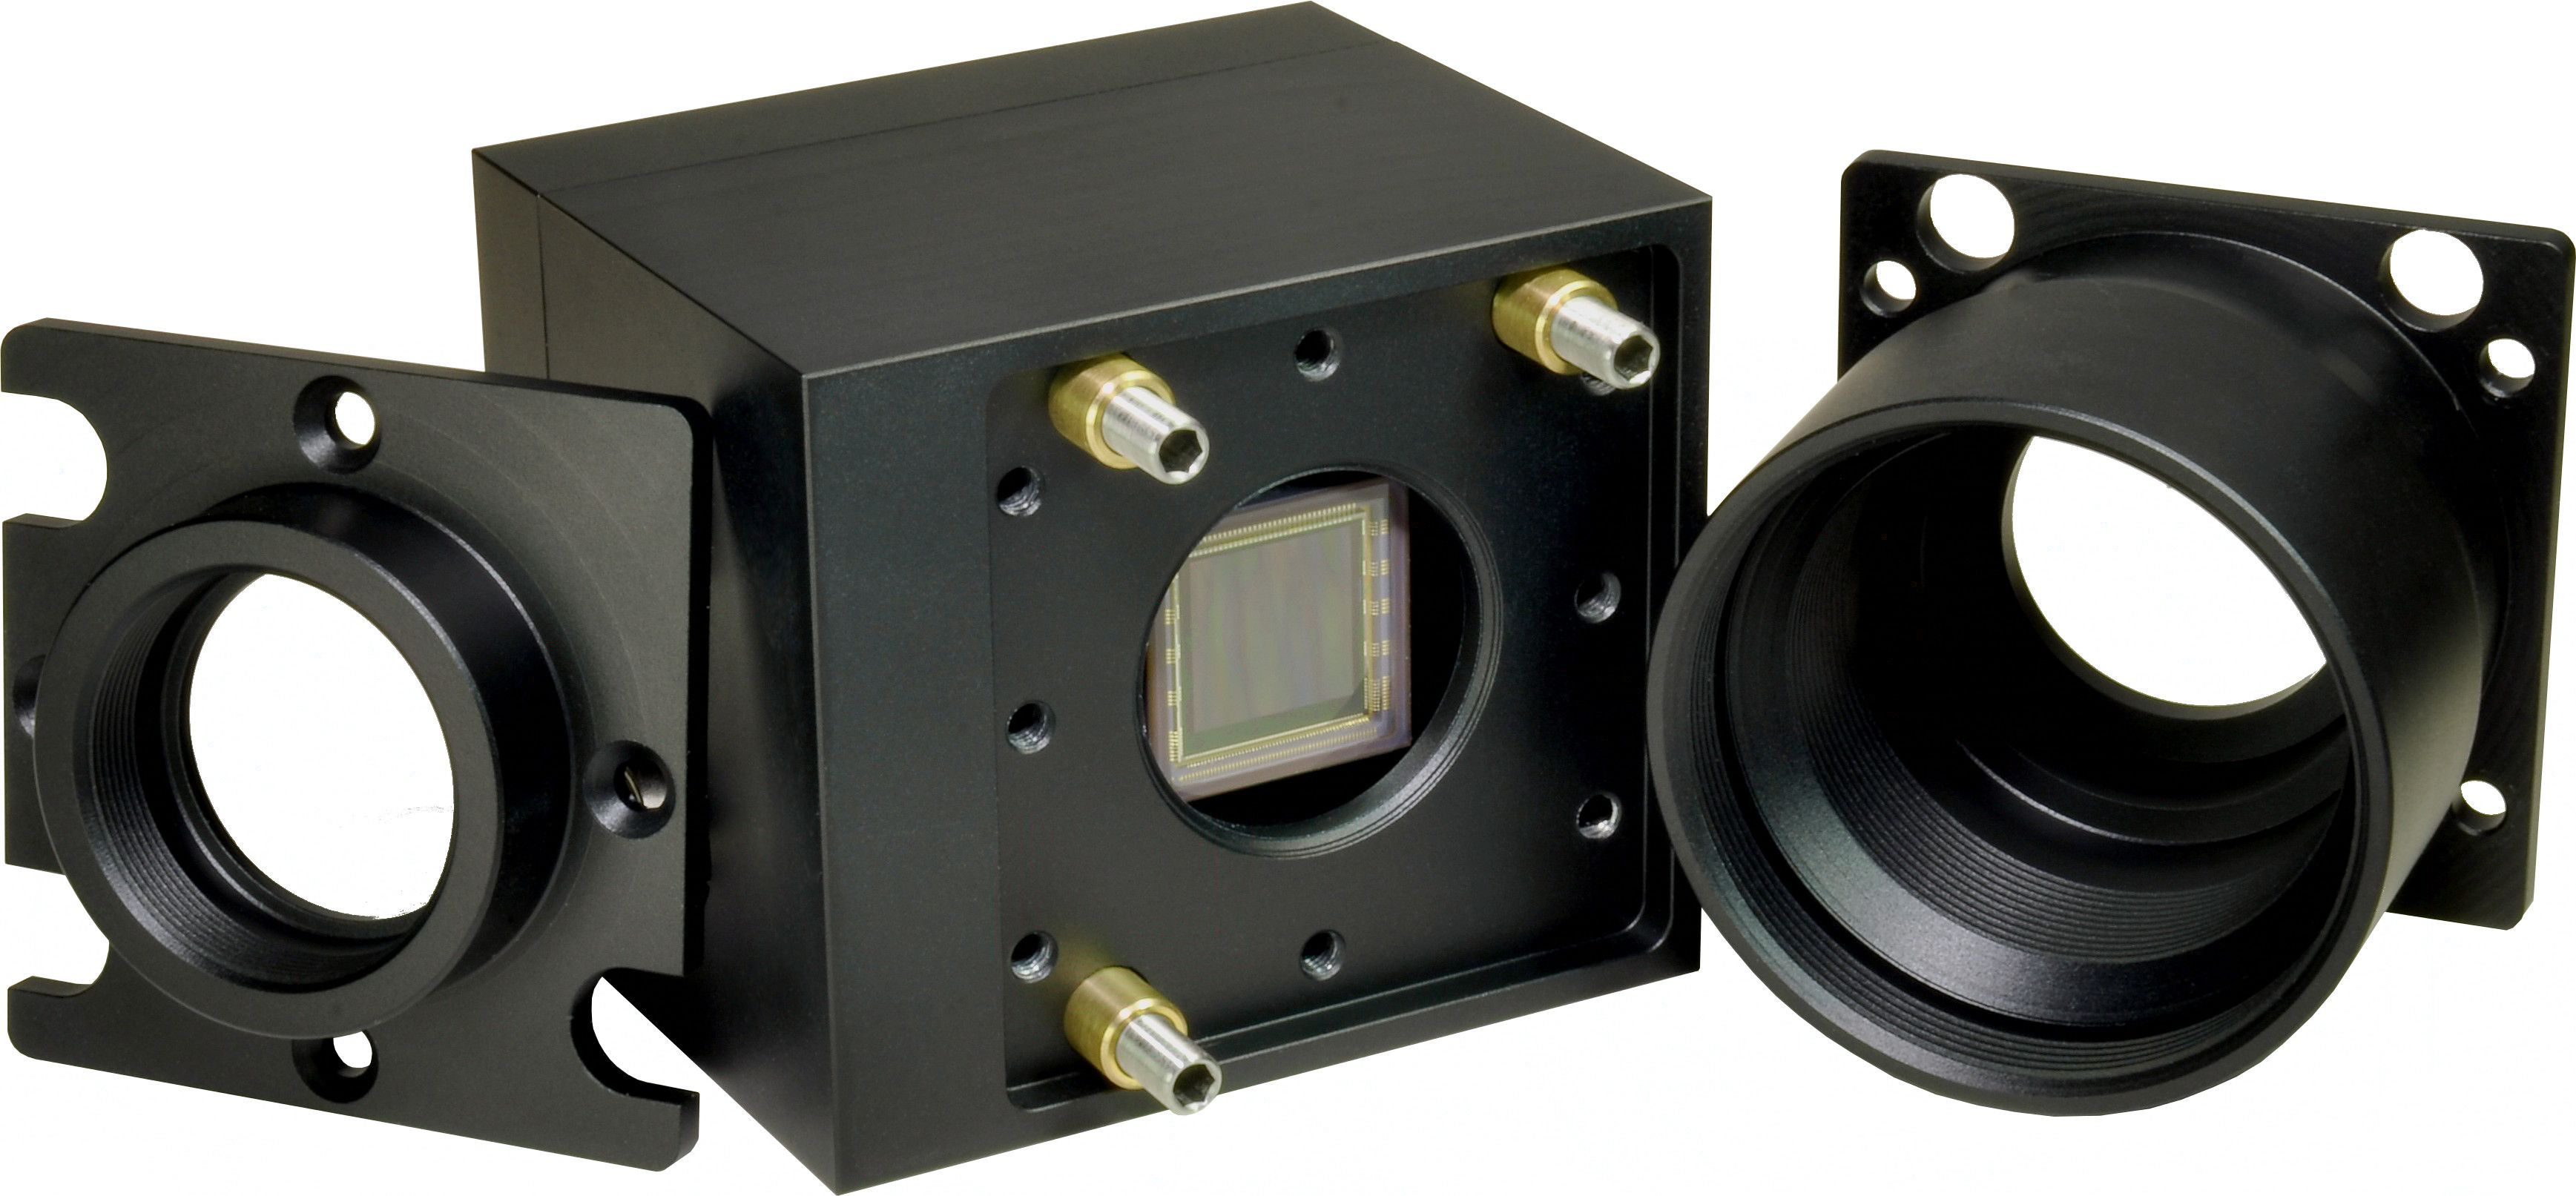 EHD Products: CCD / CMOS Cameras with USB3 0 and USB2 0 Interface